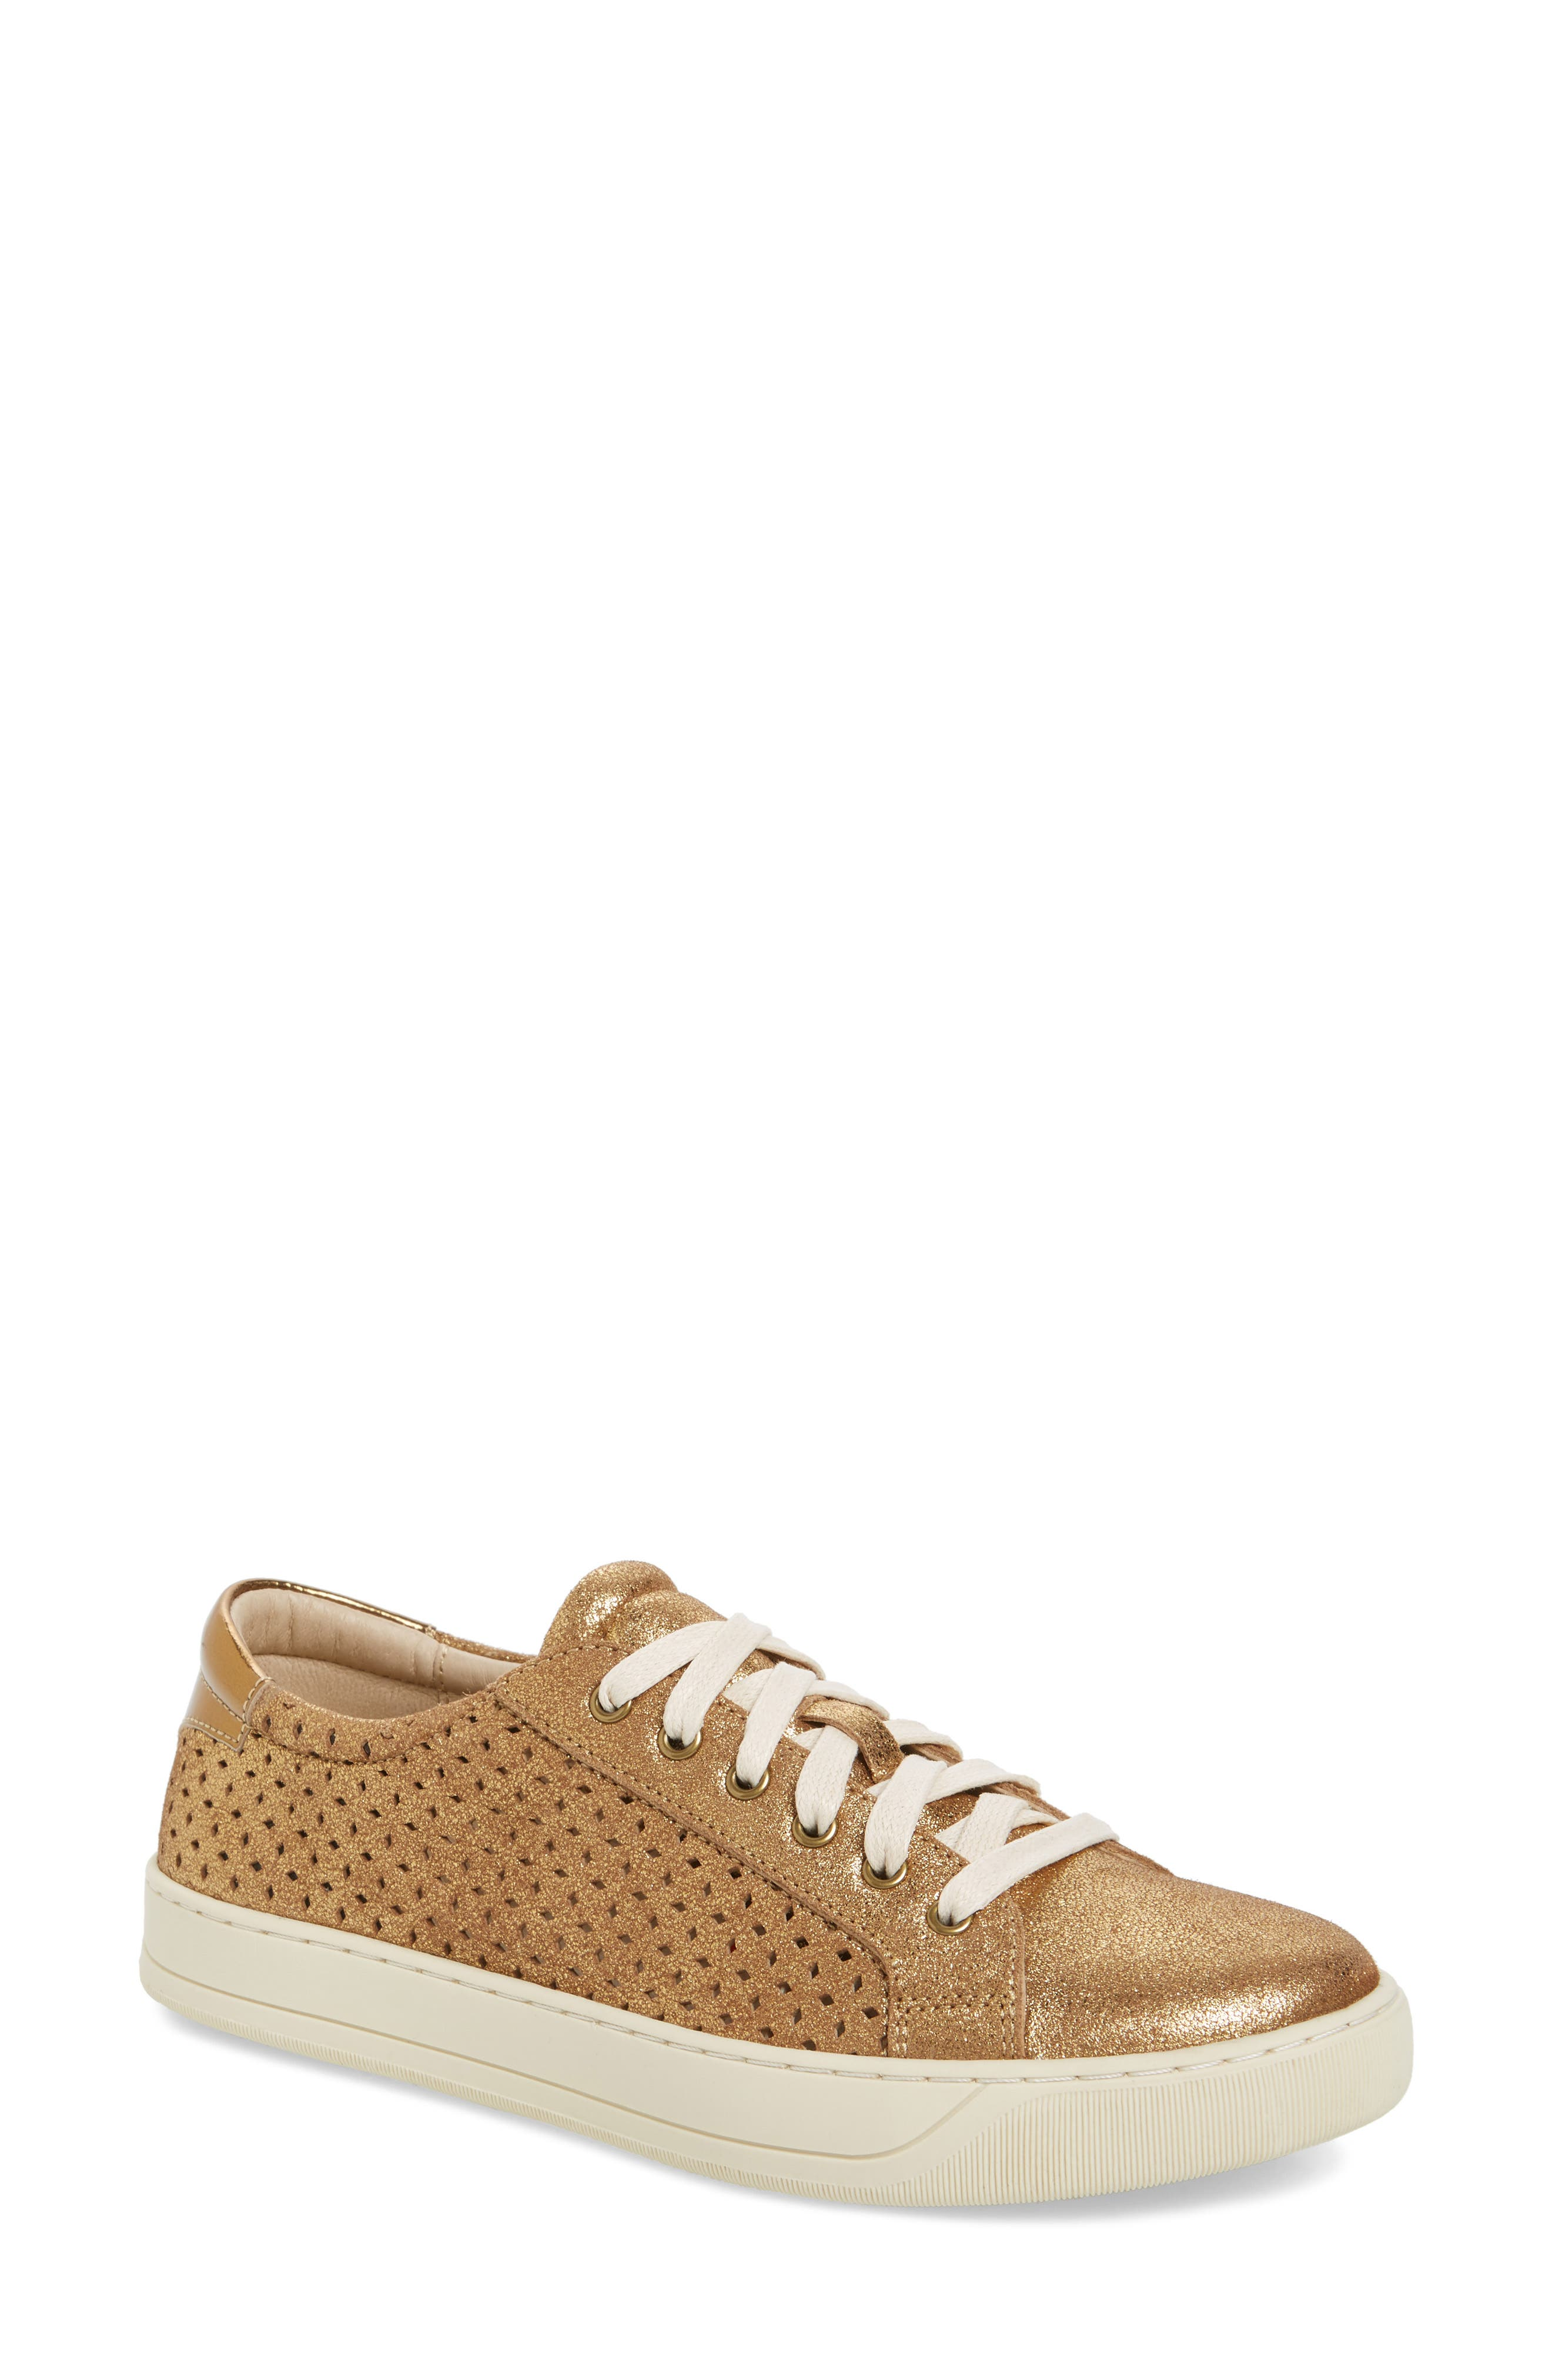 Emerson Perforated Sneaker,                         Main,                         color, GOLD SUEDE